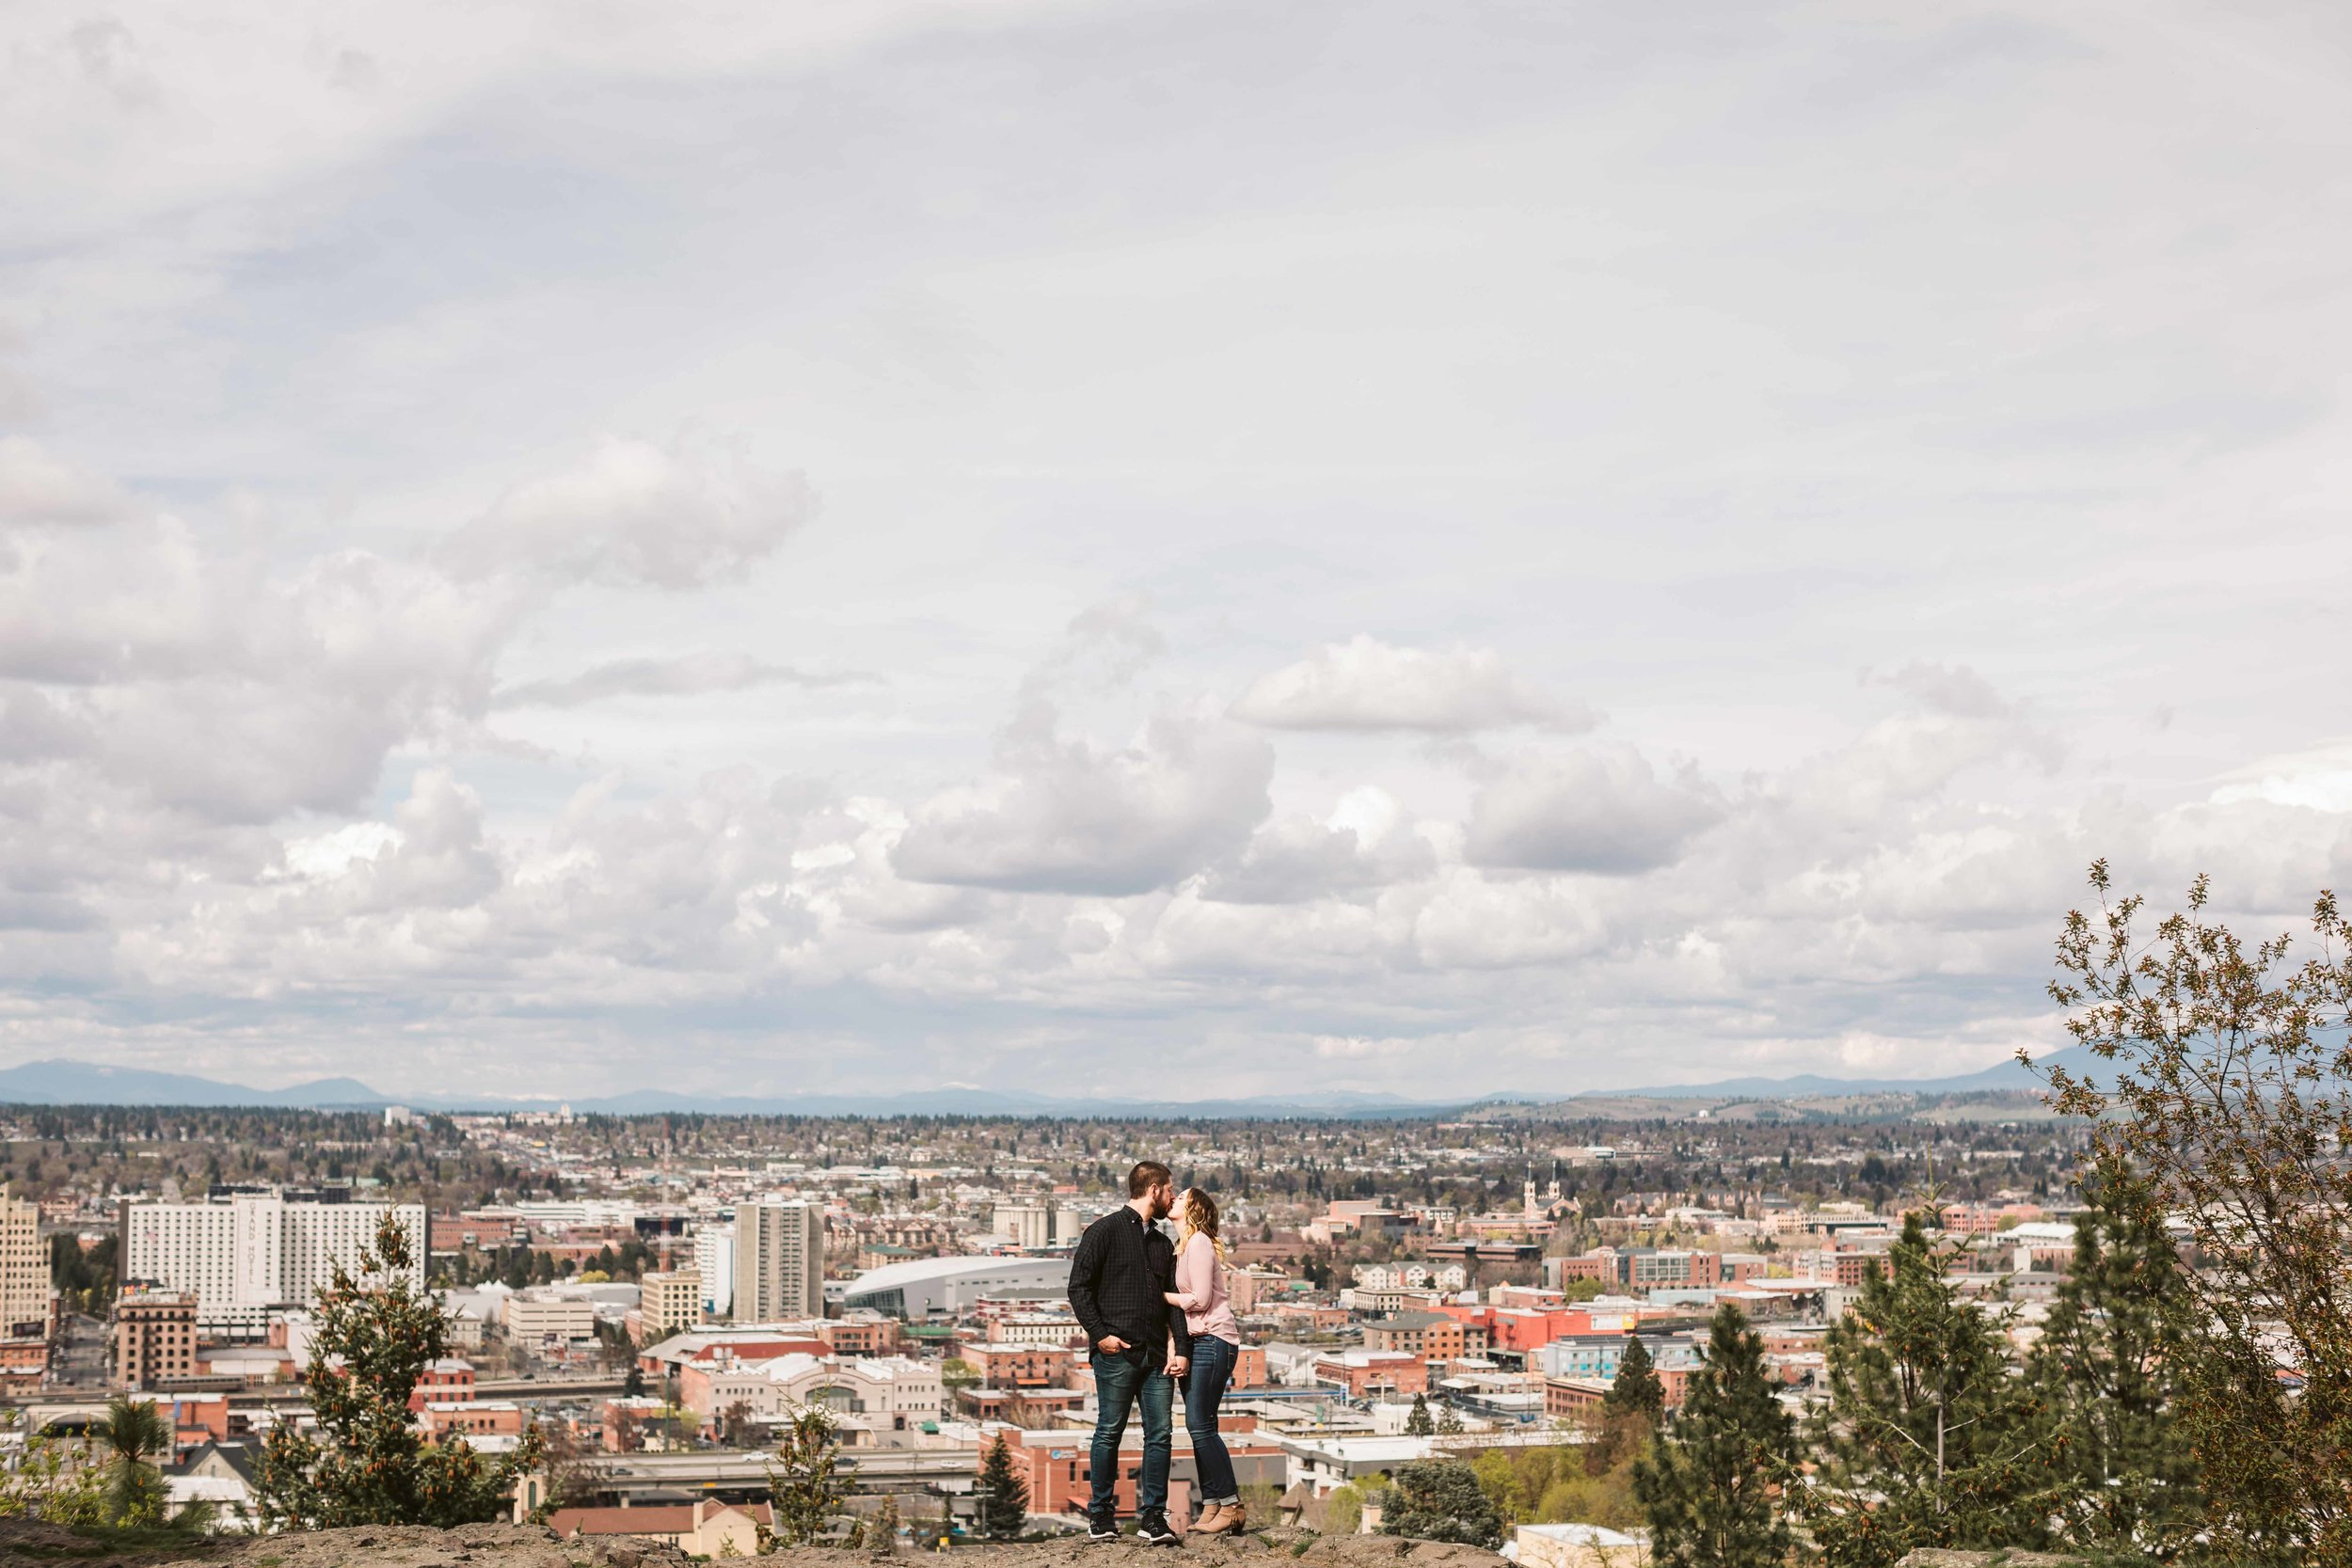 spokane-wedding-photographer-69.jpg